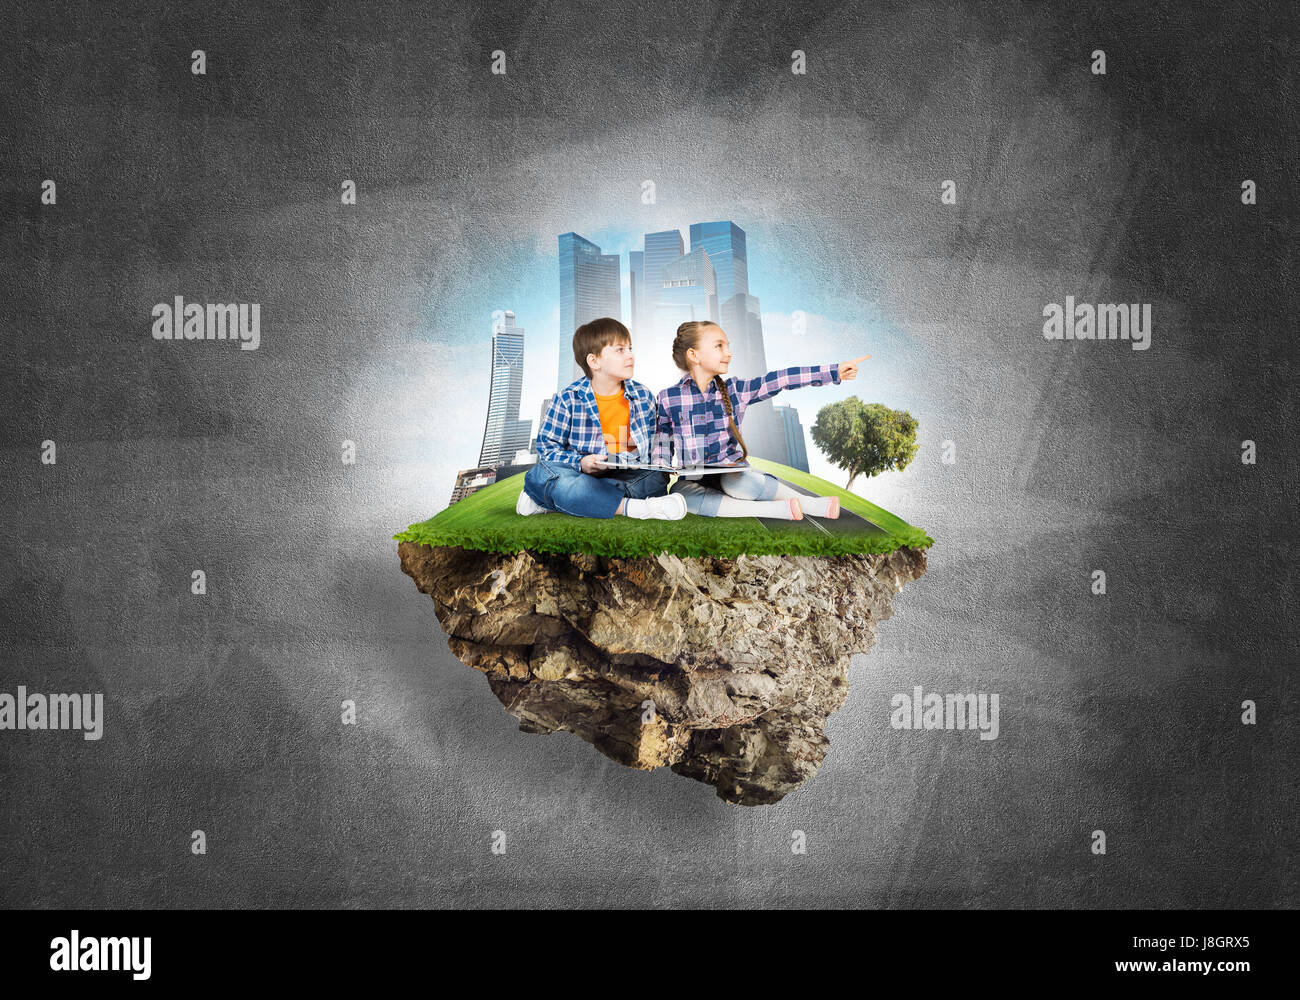 Two kids of school age with book exploring this great world - Stock Image